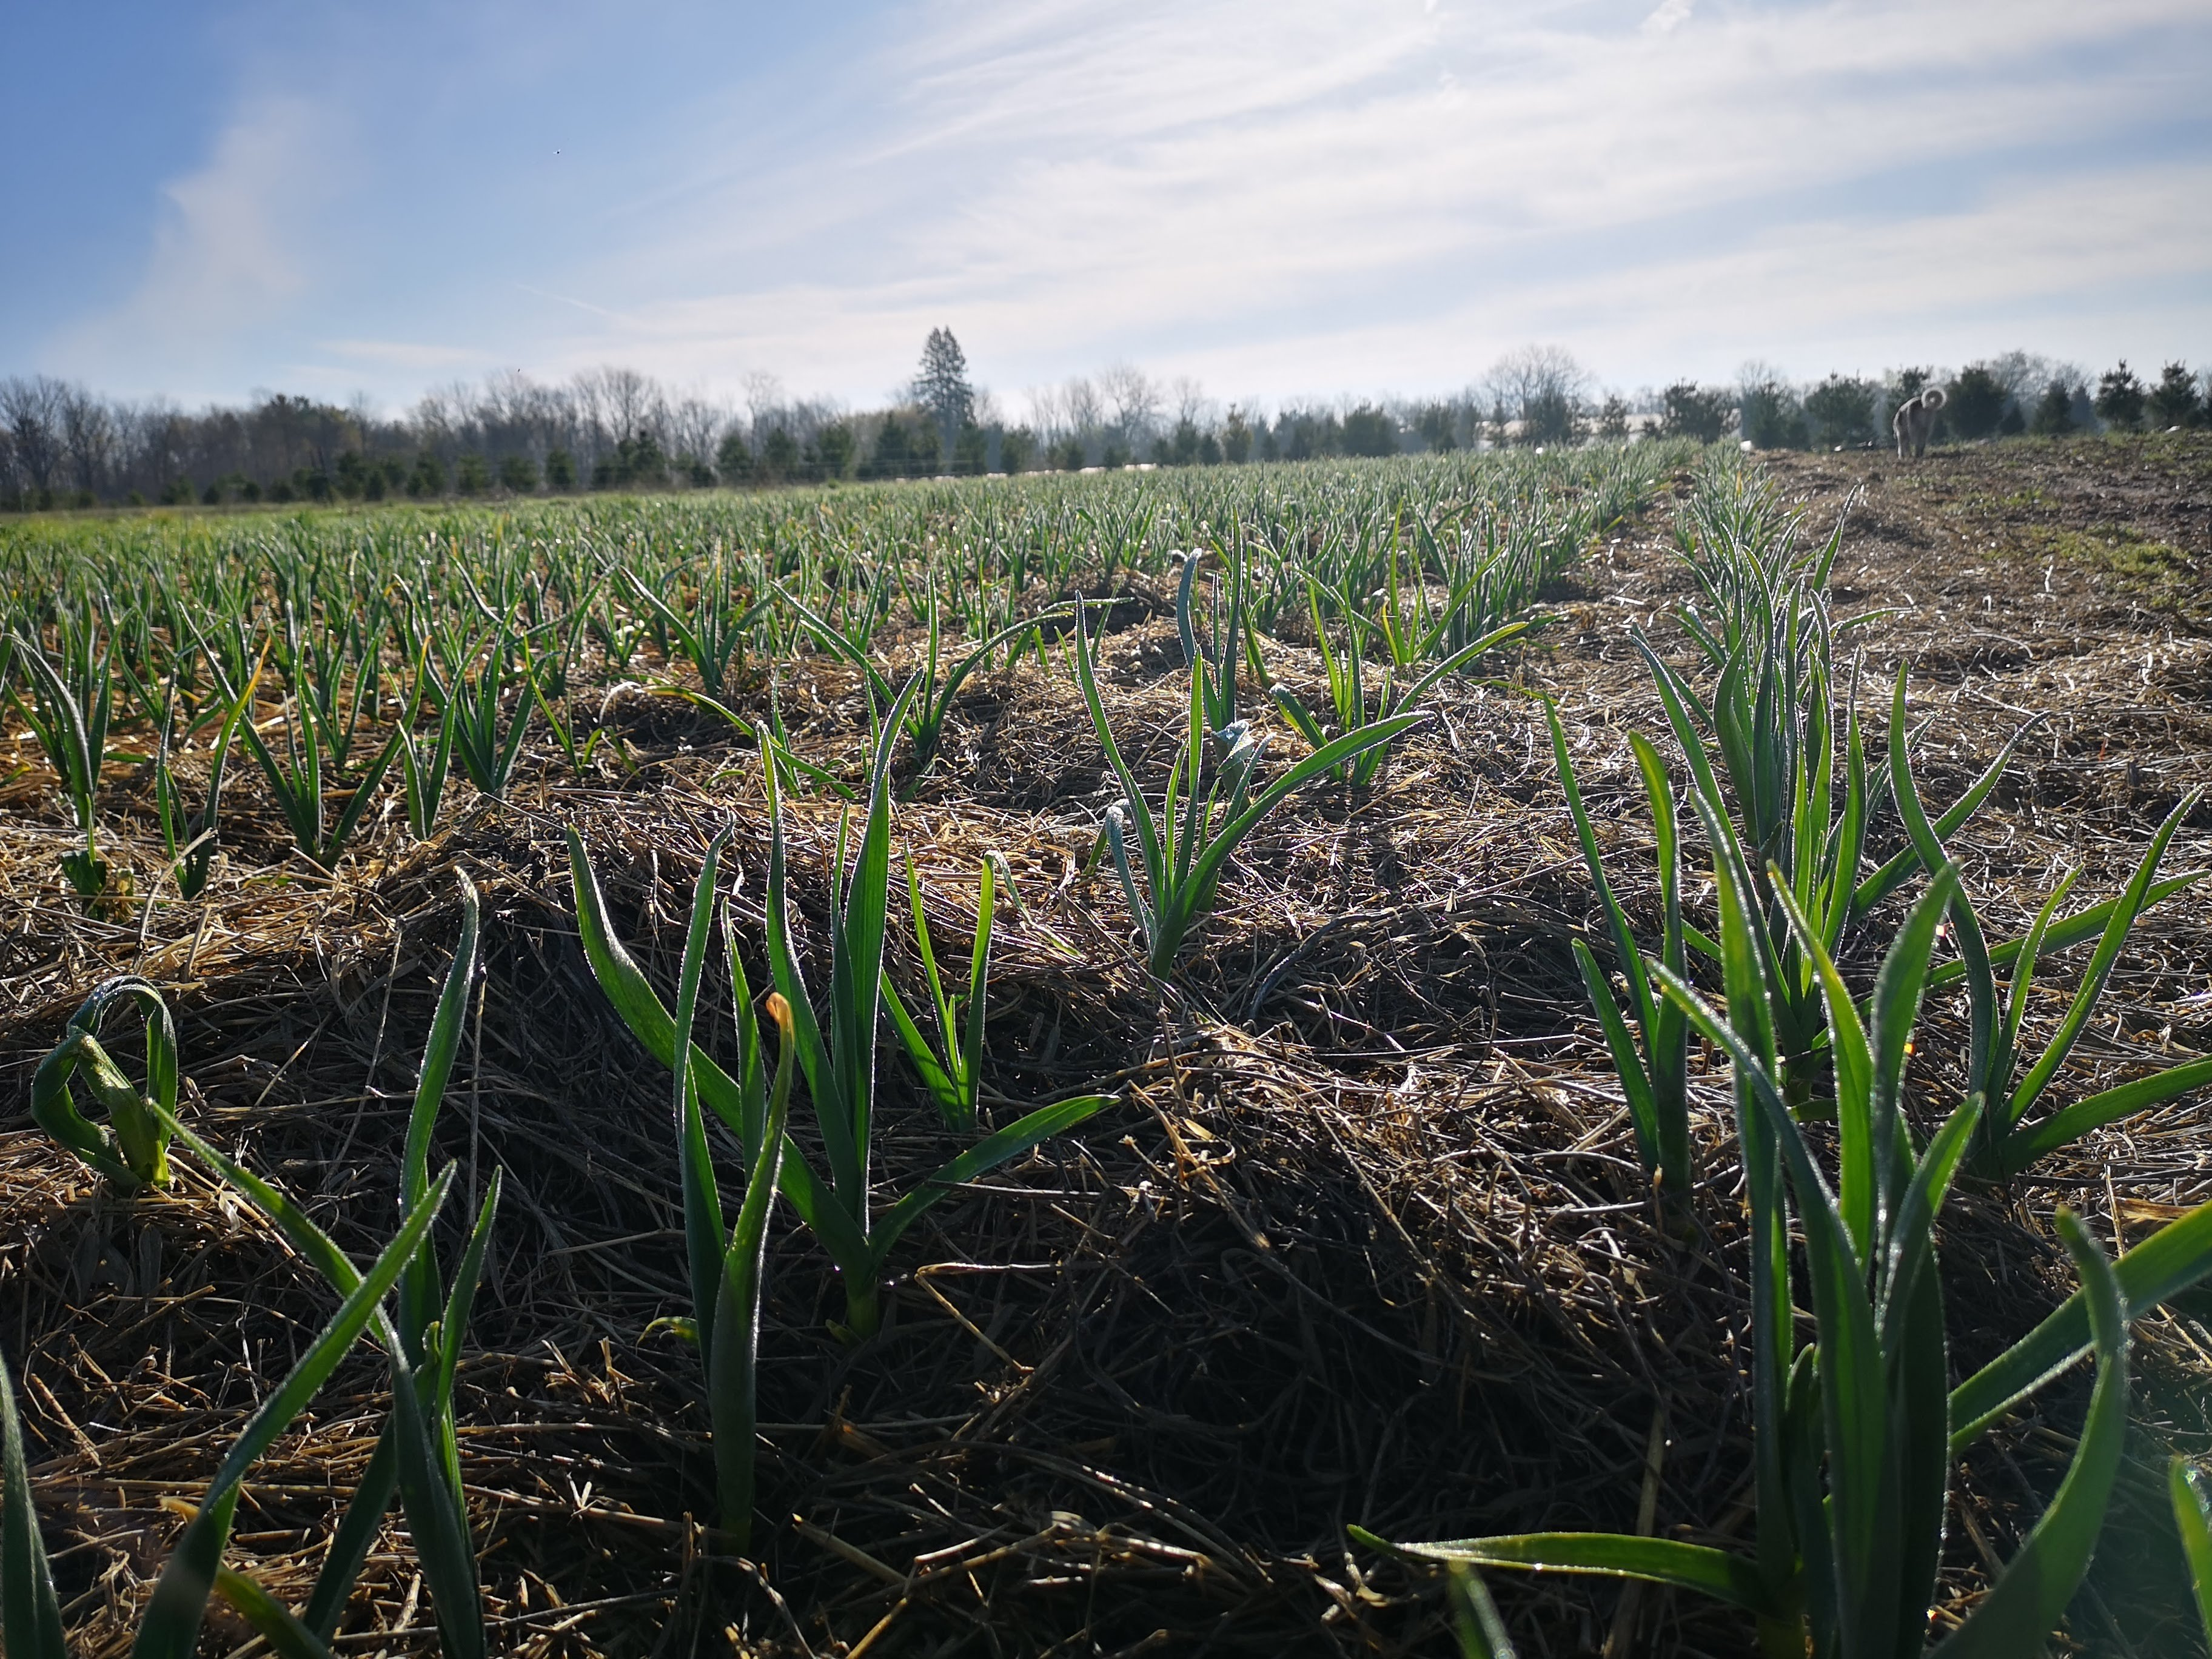 Previous Happening: Farm Happenings for May 9, 2019